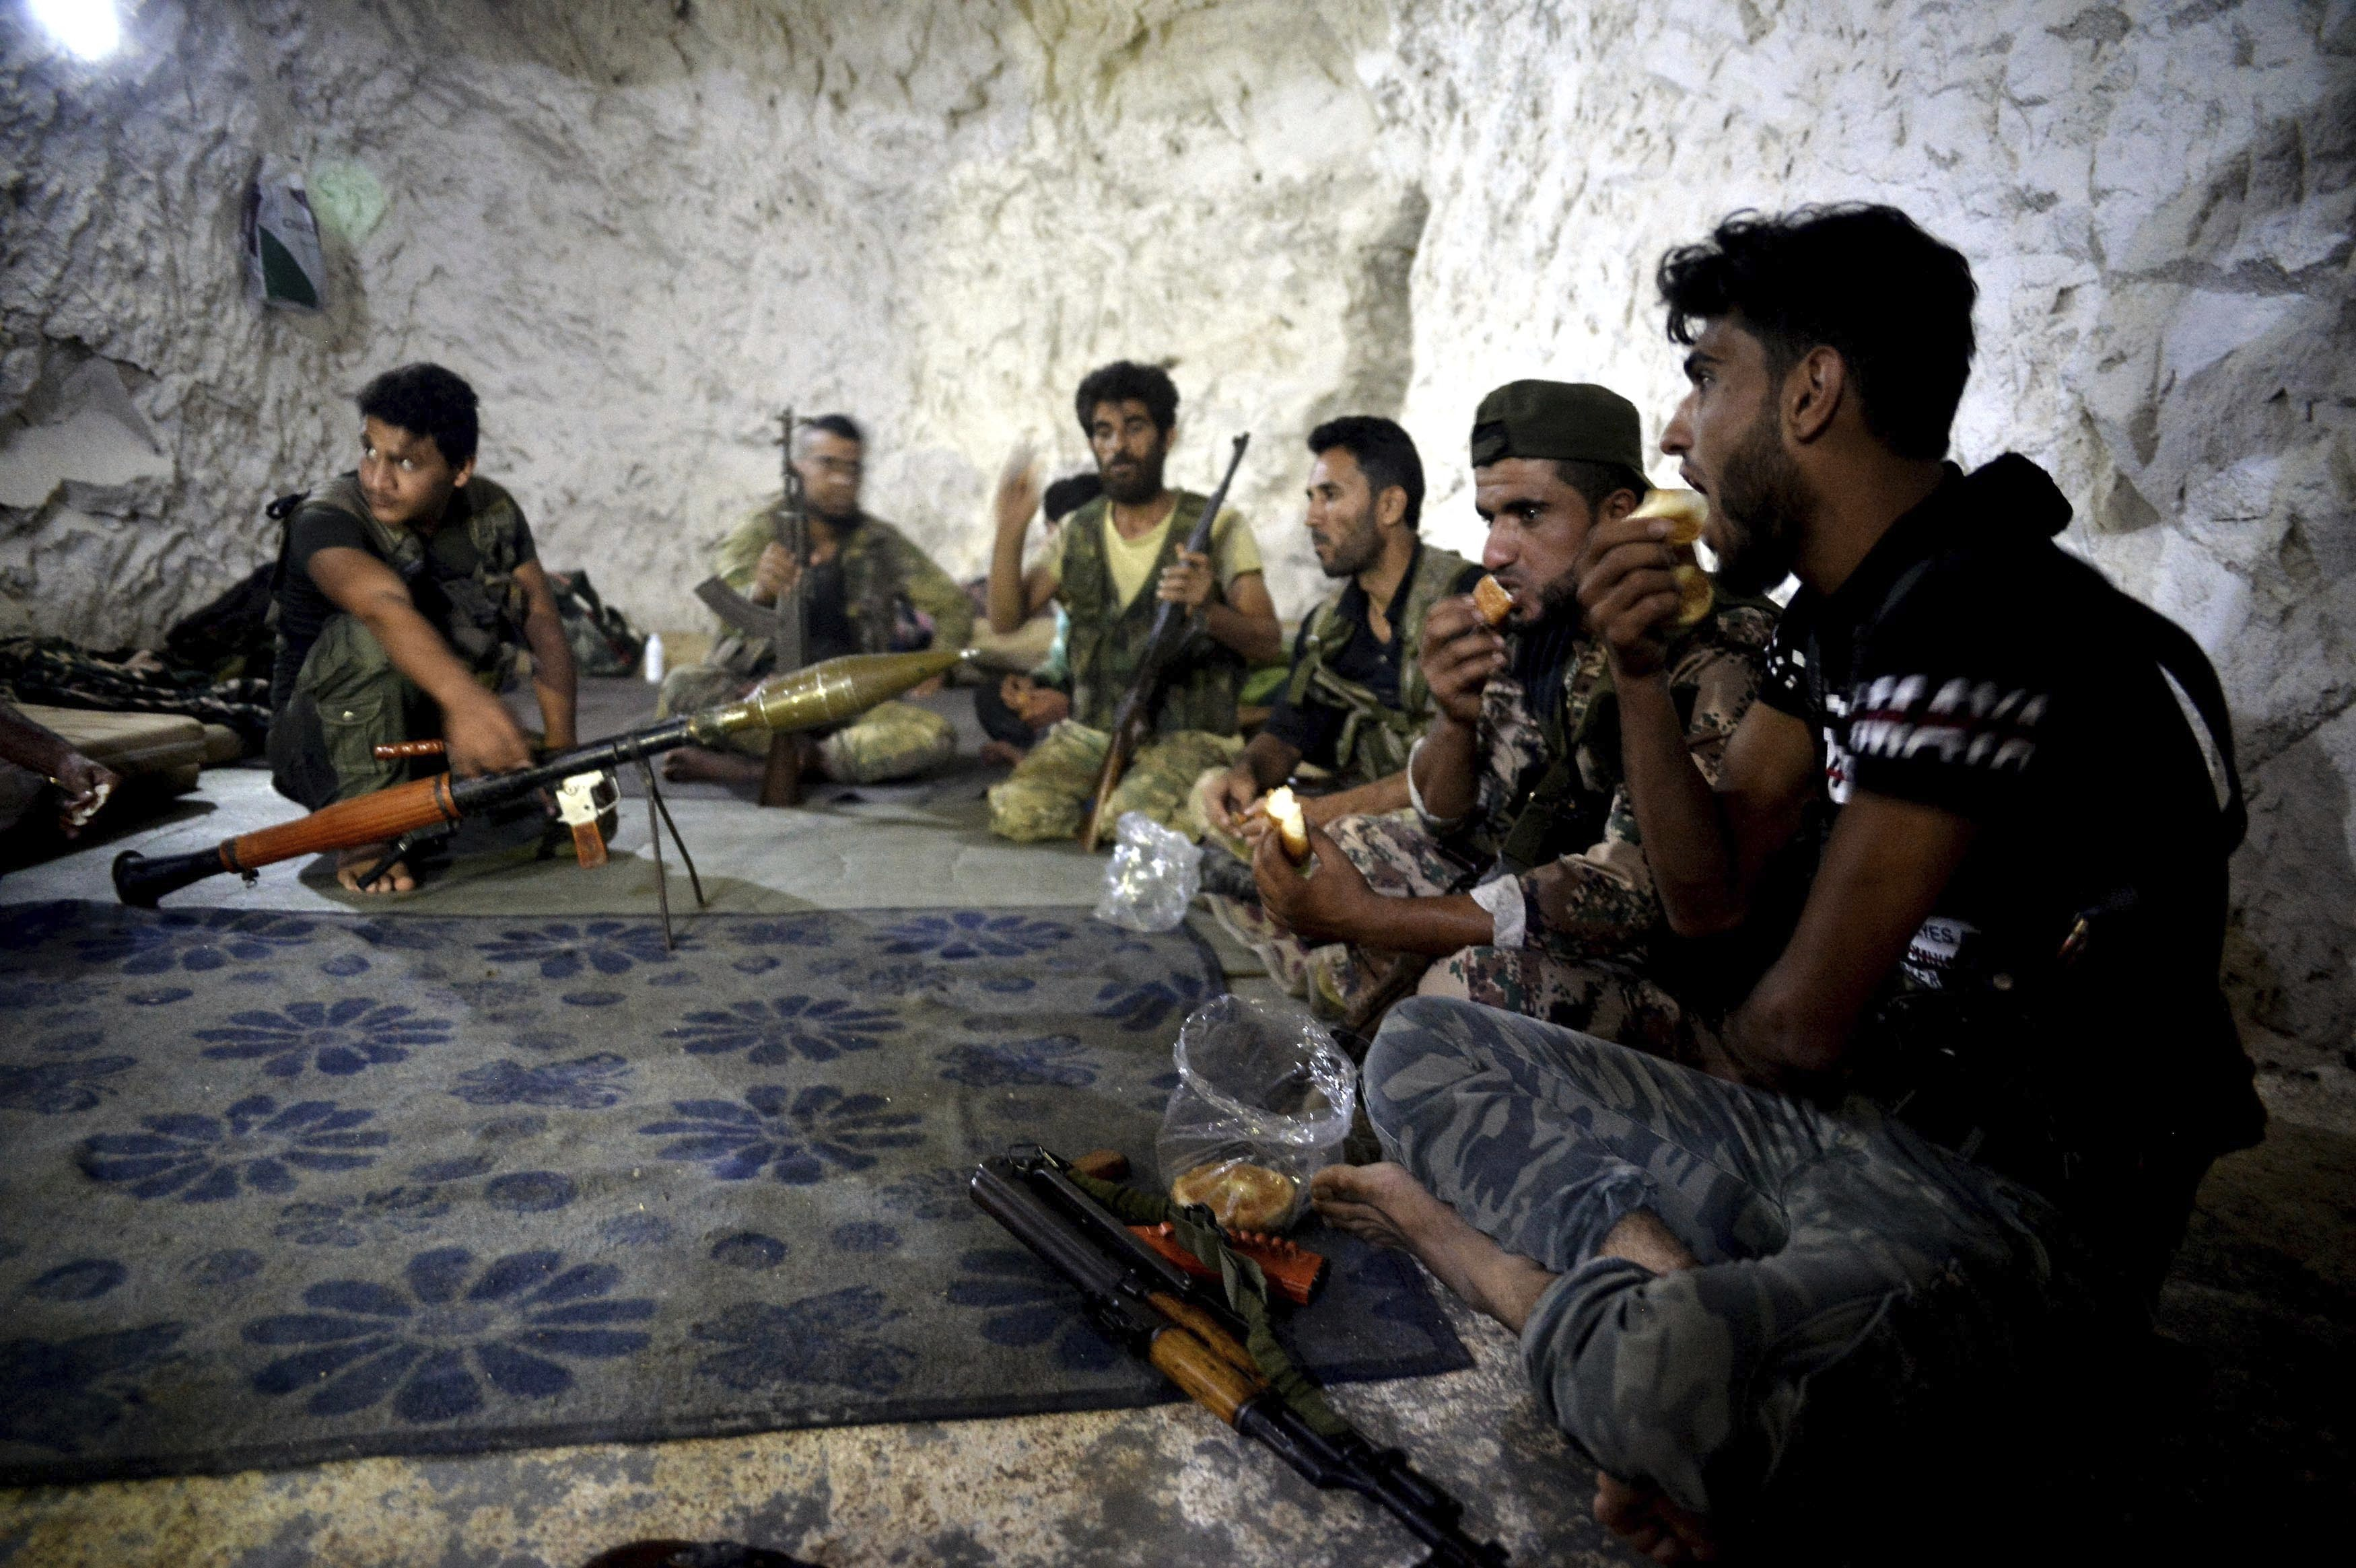 FILE - Syrian rebels eat in a cave in which they also live, on the outskirts of the northern town of Jisr al-Shughur, Idlib province, Syria, west of the city of Idlib, Sept. 9, 2018.